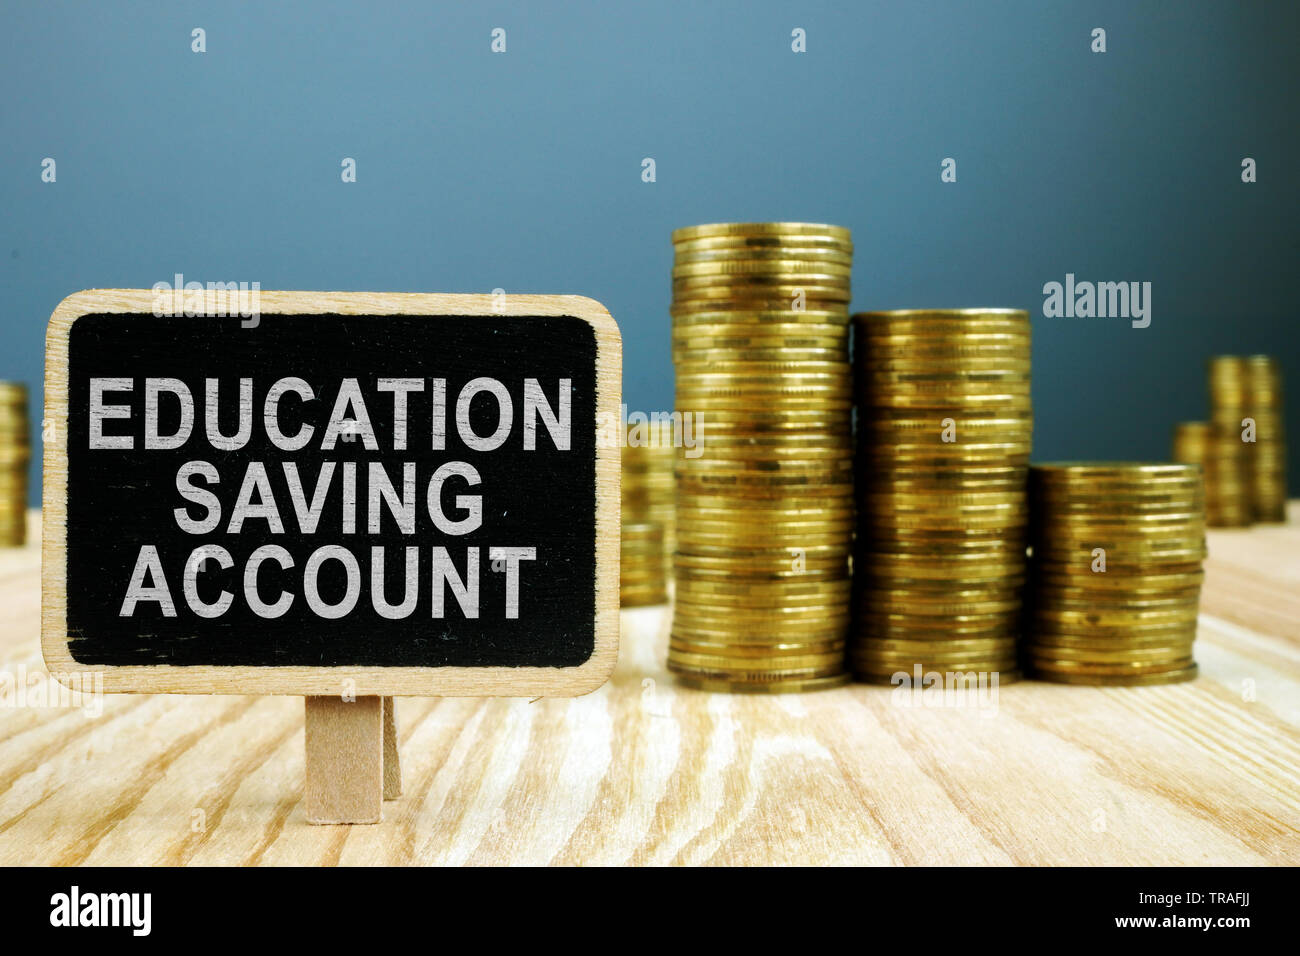 ESA Education Saving Account concept. Stack of coins. - Stock Image